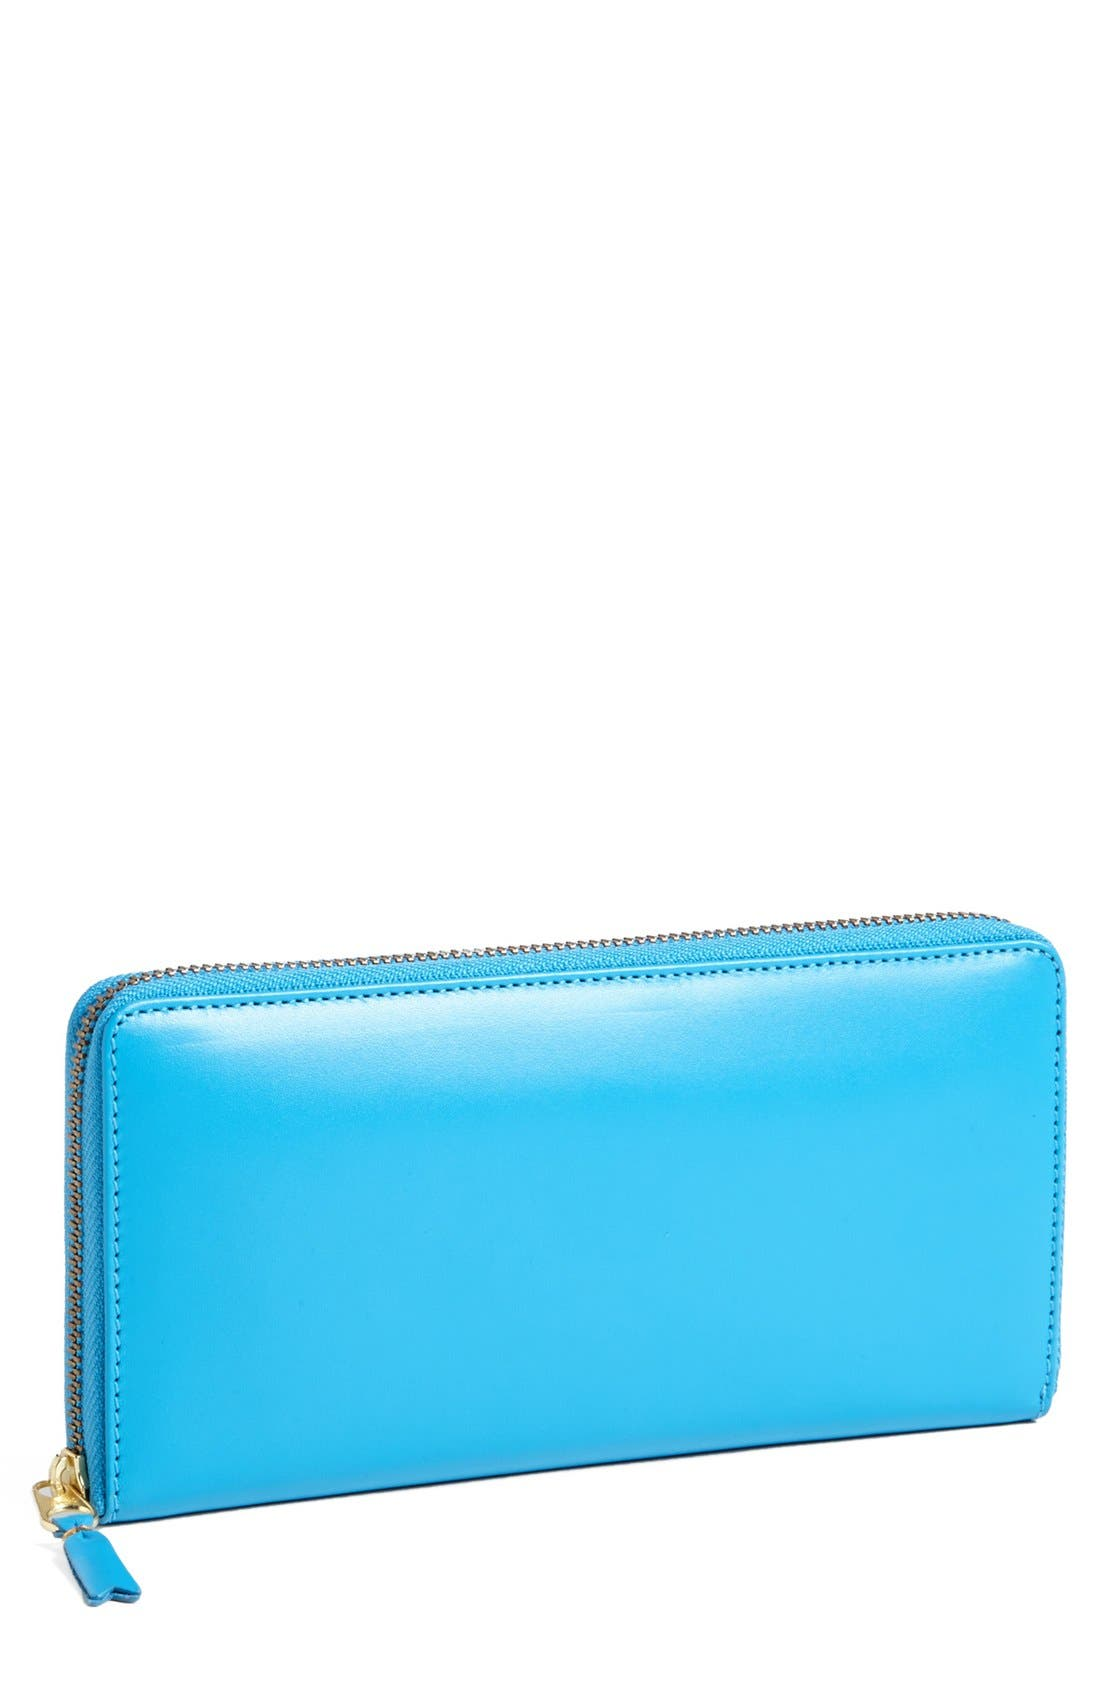 Continental Long Wallet,                         Main,                         color, BLUE